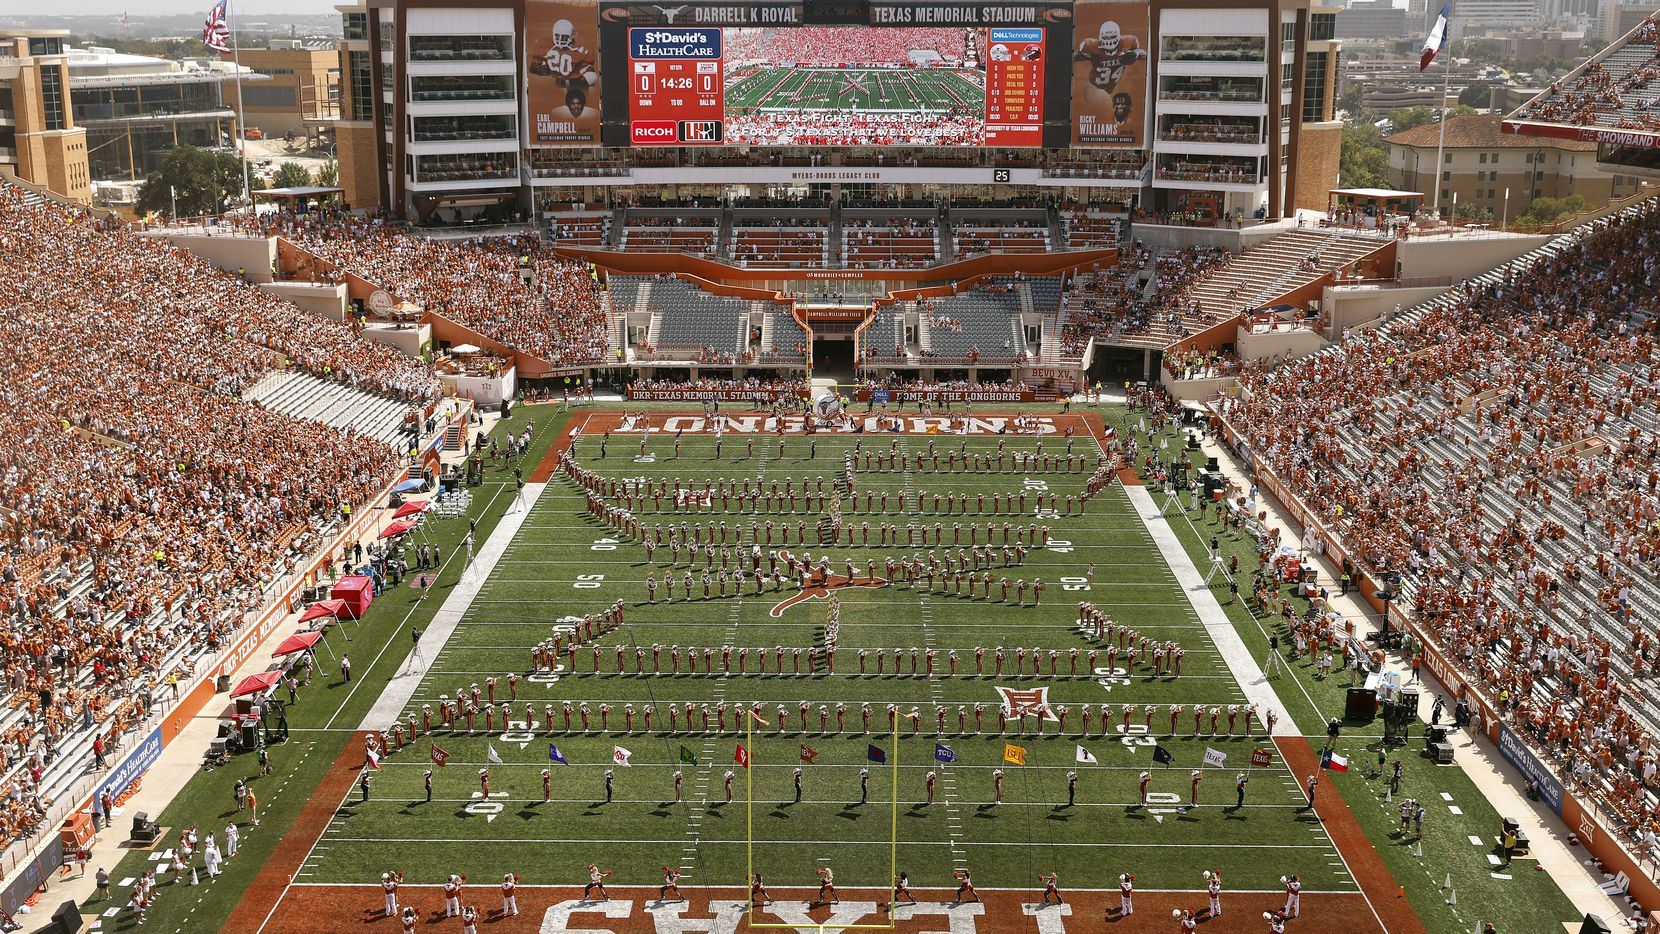 The south end zone expansion at DKR-Texas Memorial Stadium is complete with an upgraded video scoreboard, new suites, clubs, loge boxes, sponsor amenities and new fan seating around an orange cutout of a longhorn.  The expansion completes the stadium bowl pushing seating capacity over 100,000.  The completed structure and new turf field is pictured during the season opener against the Louisiana-Lafayette Ragin Cajuns in Austin, Saturday, September 4, 2021. (Tom Fox/The Dallas Morning News)